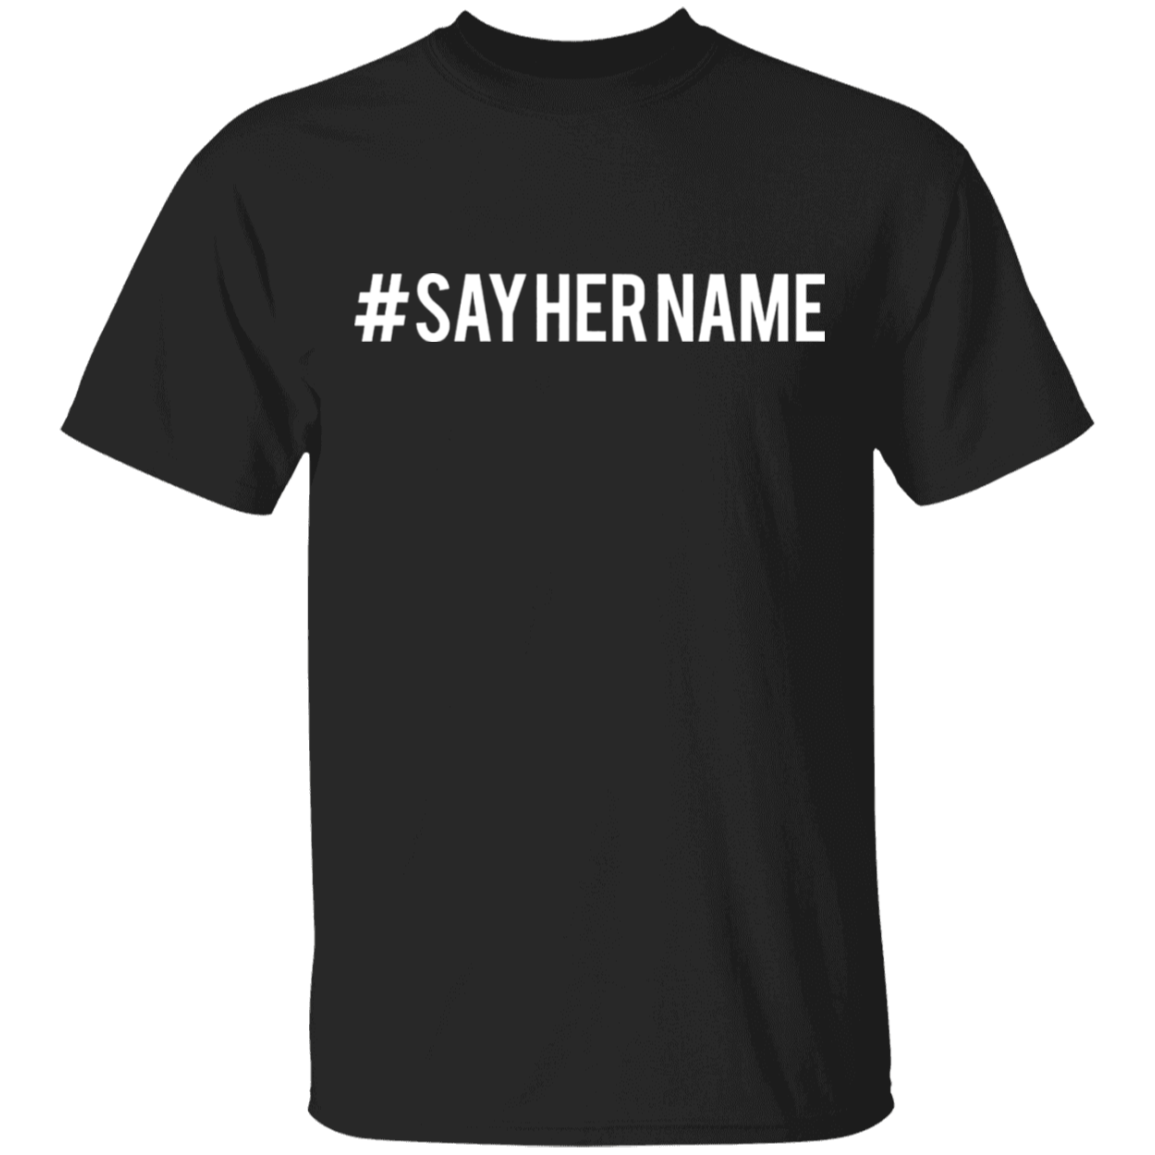 #sayhername Shirt Justice For Breonna Taylor T-Shirt Protest Blm Merch